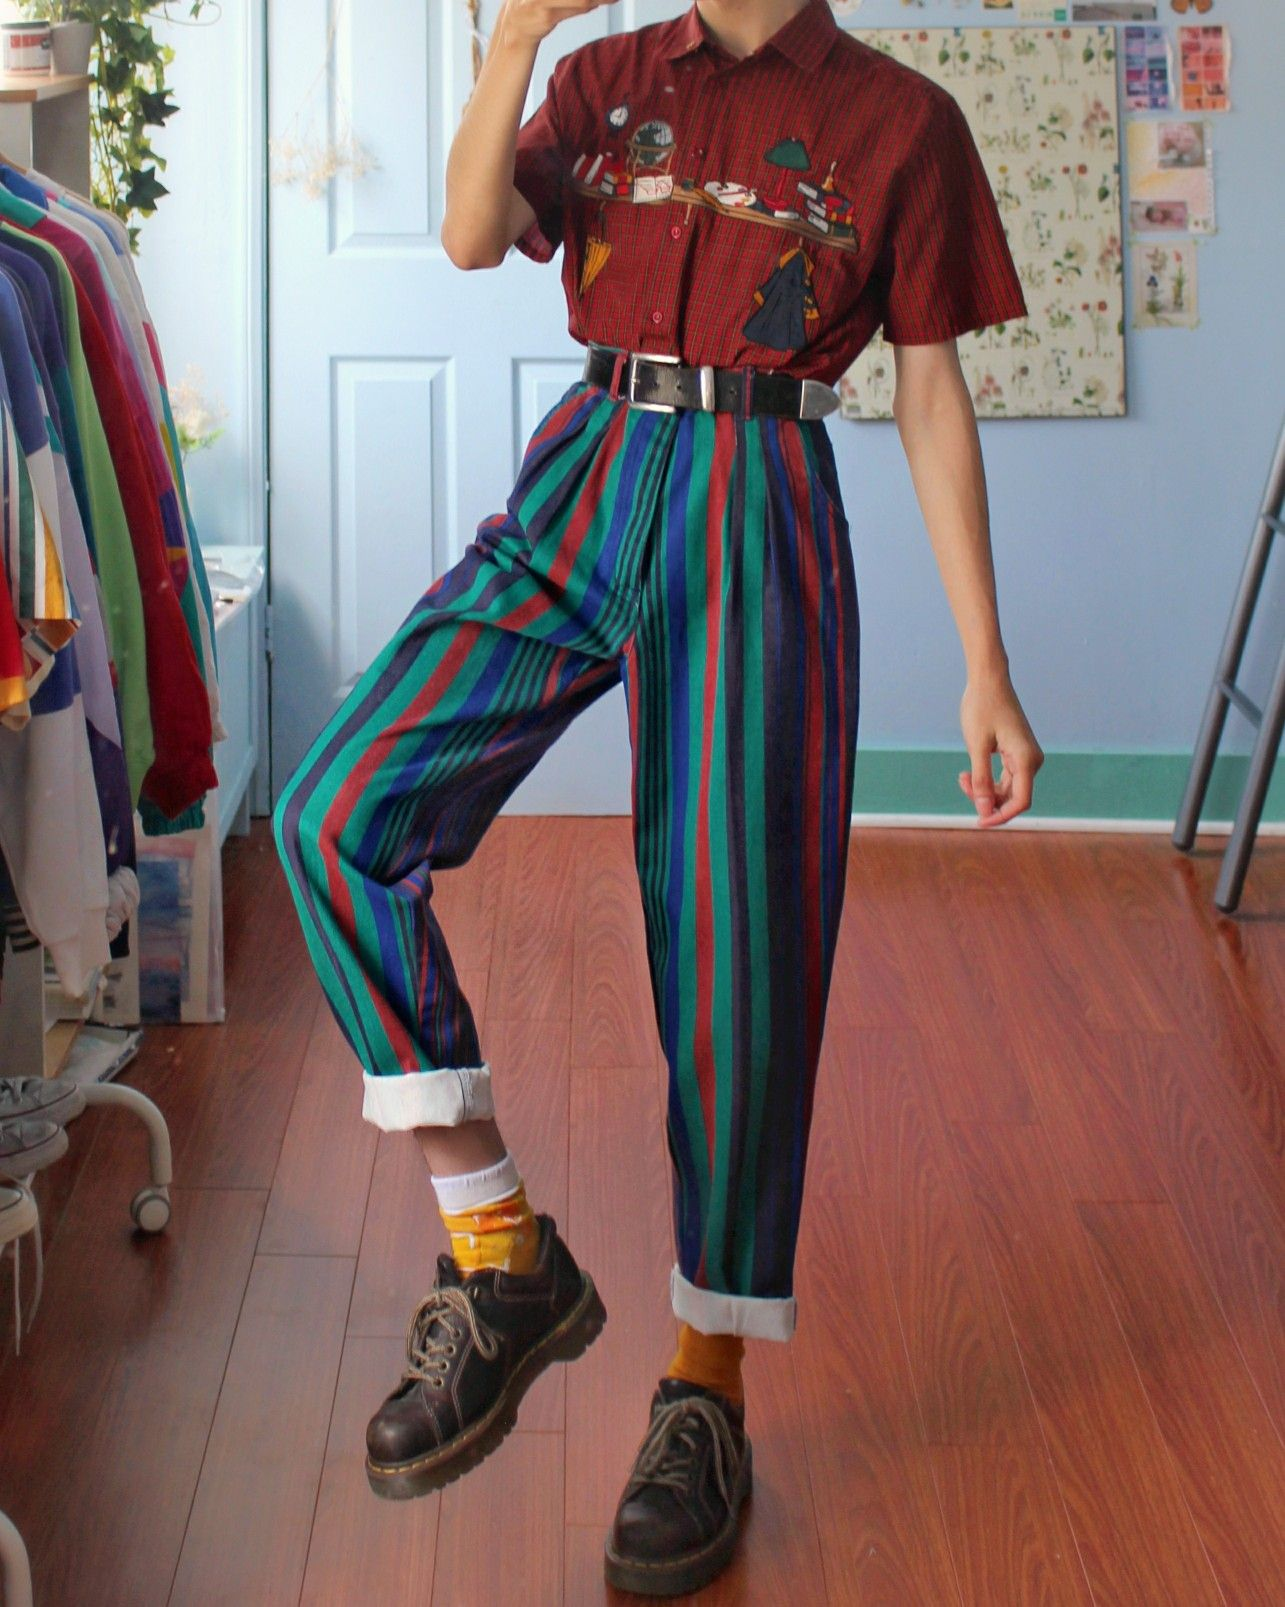 80er-jahre outfit ideen